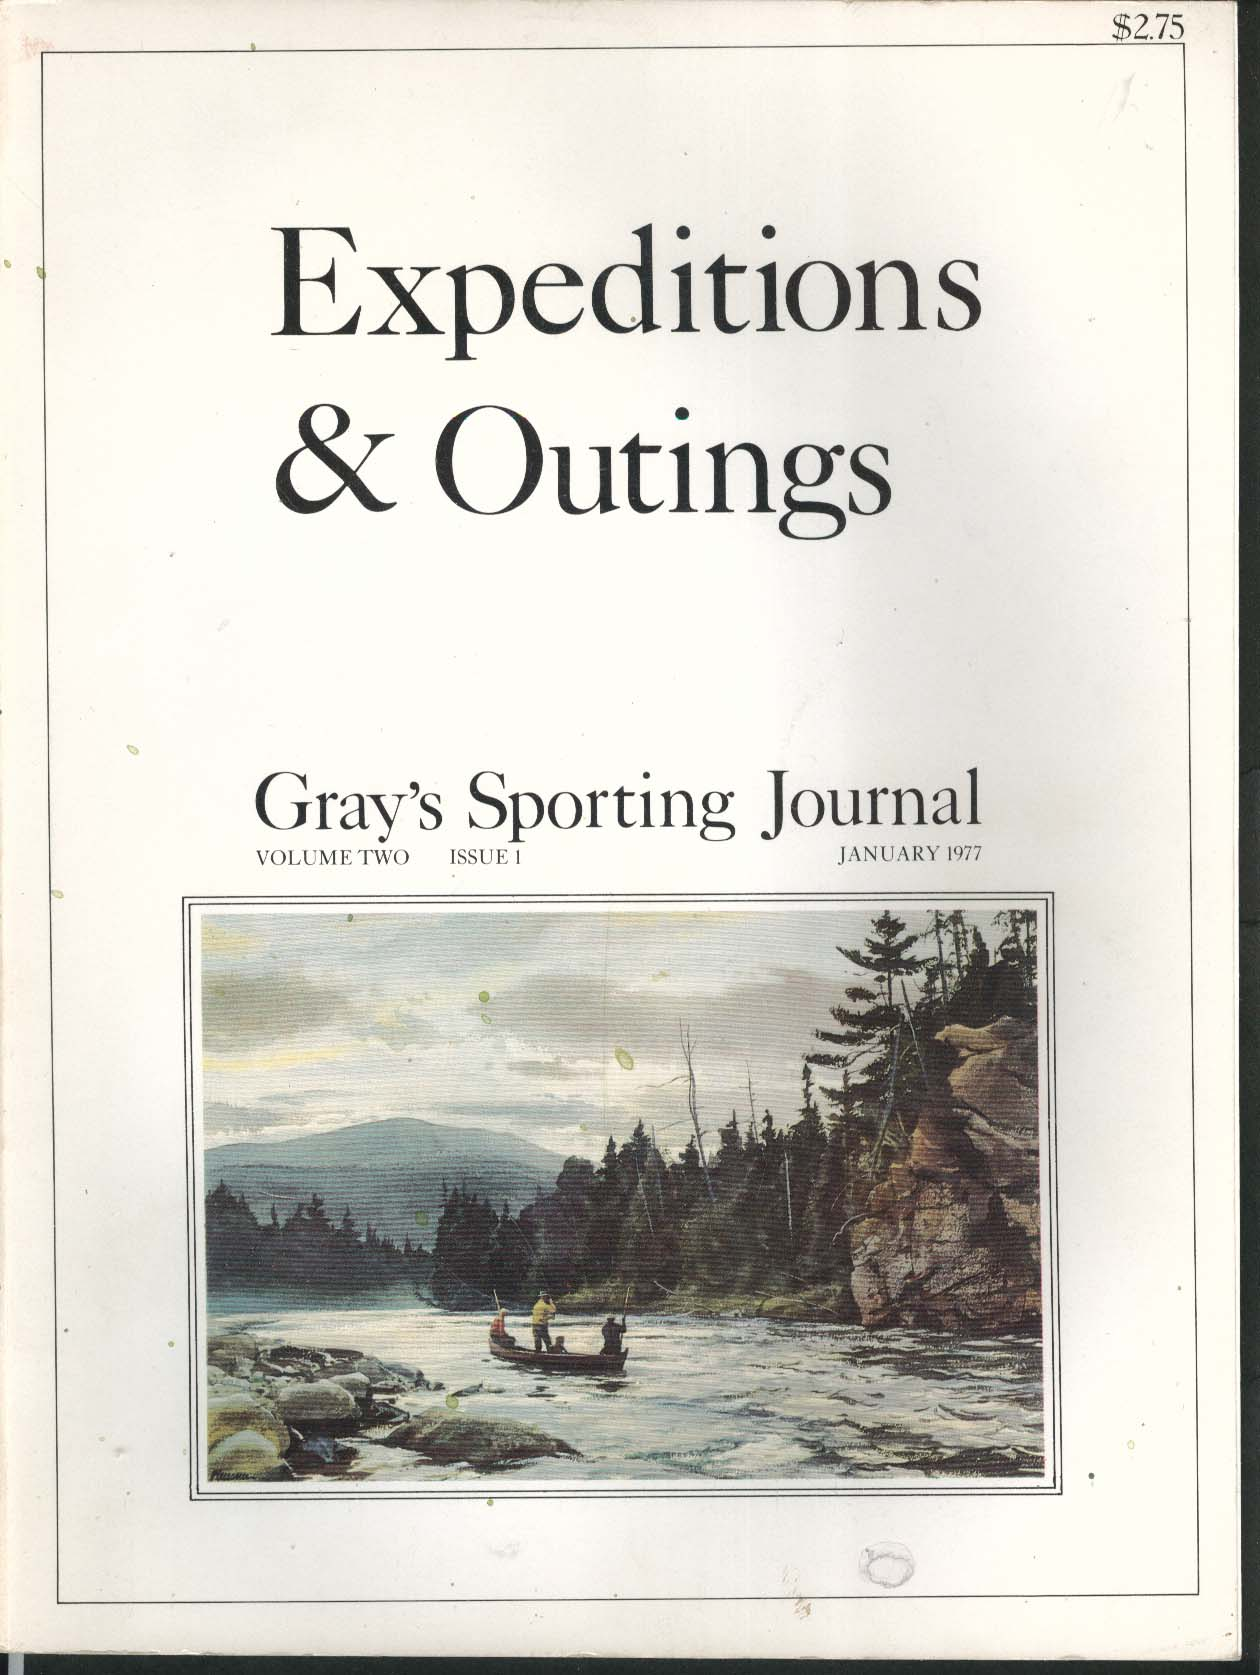 GRAY'S SPORTING JOURNAL Expeditions & Outings Bob Bryan Jacob's Strut 1 1977